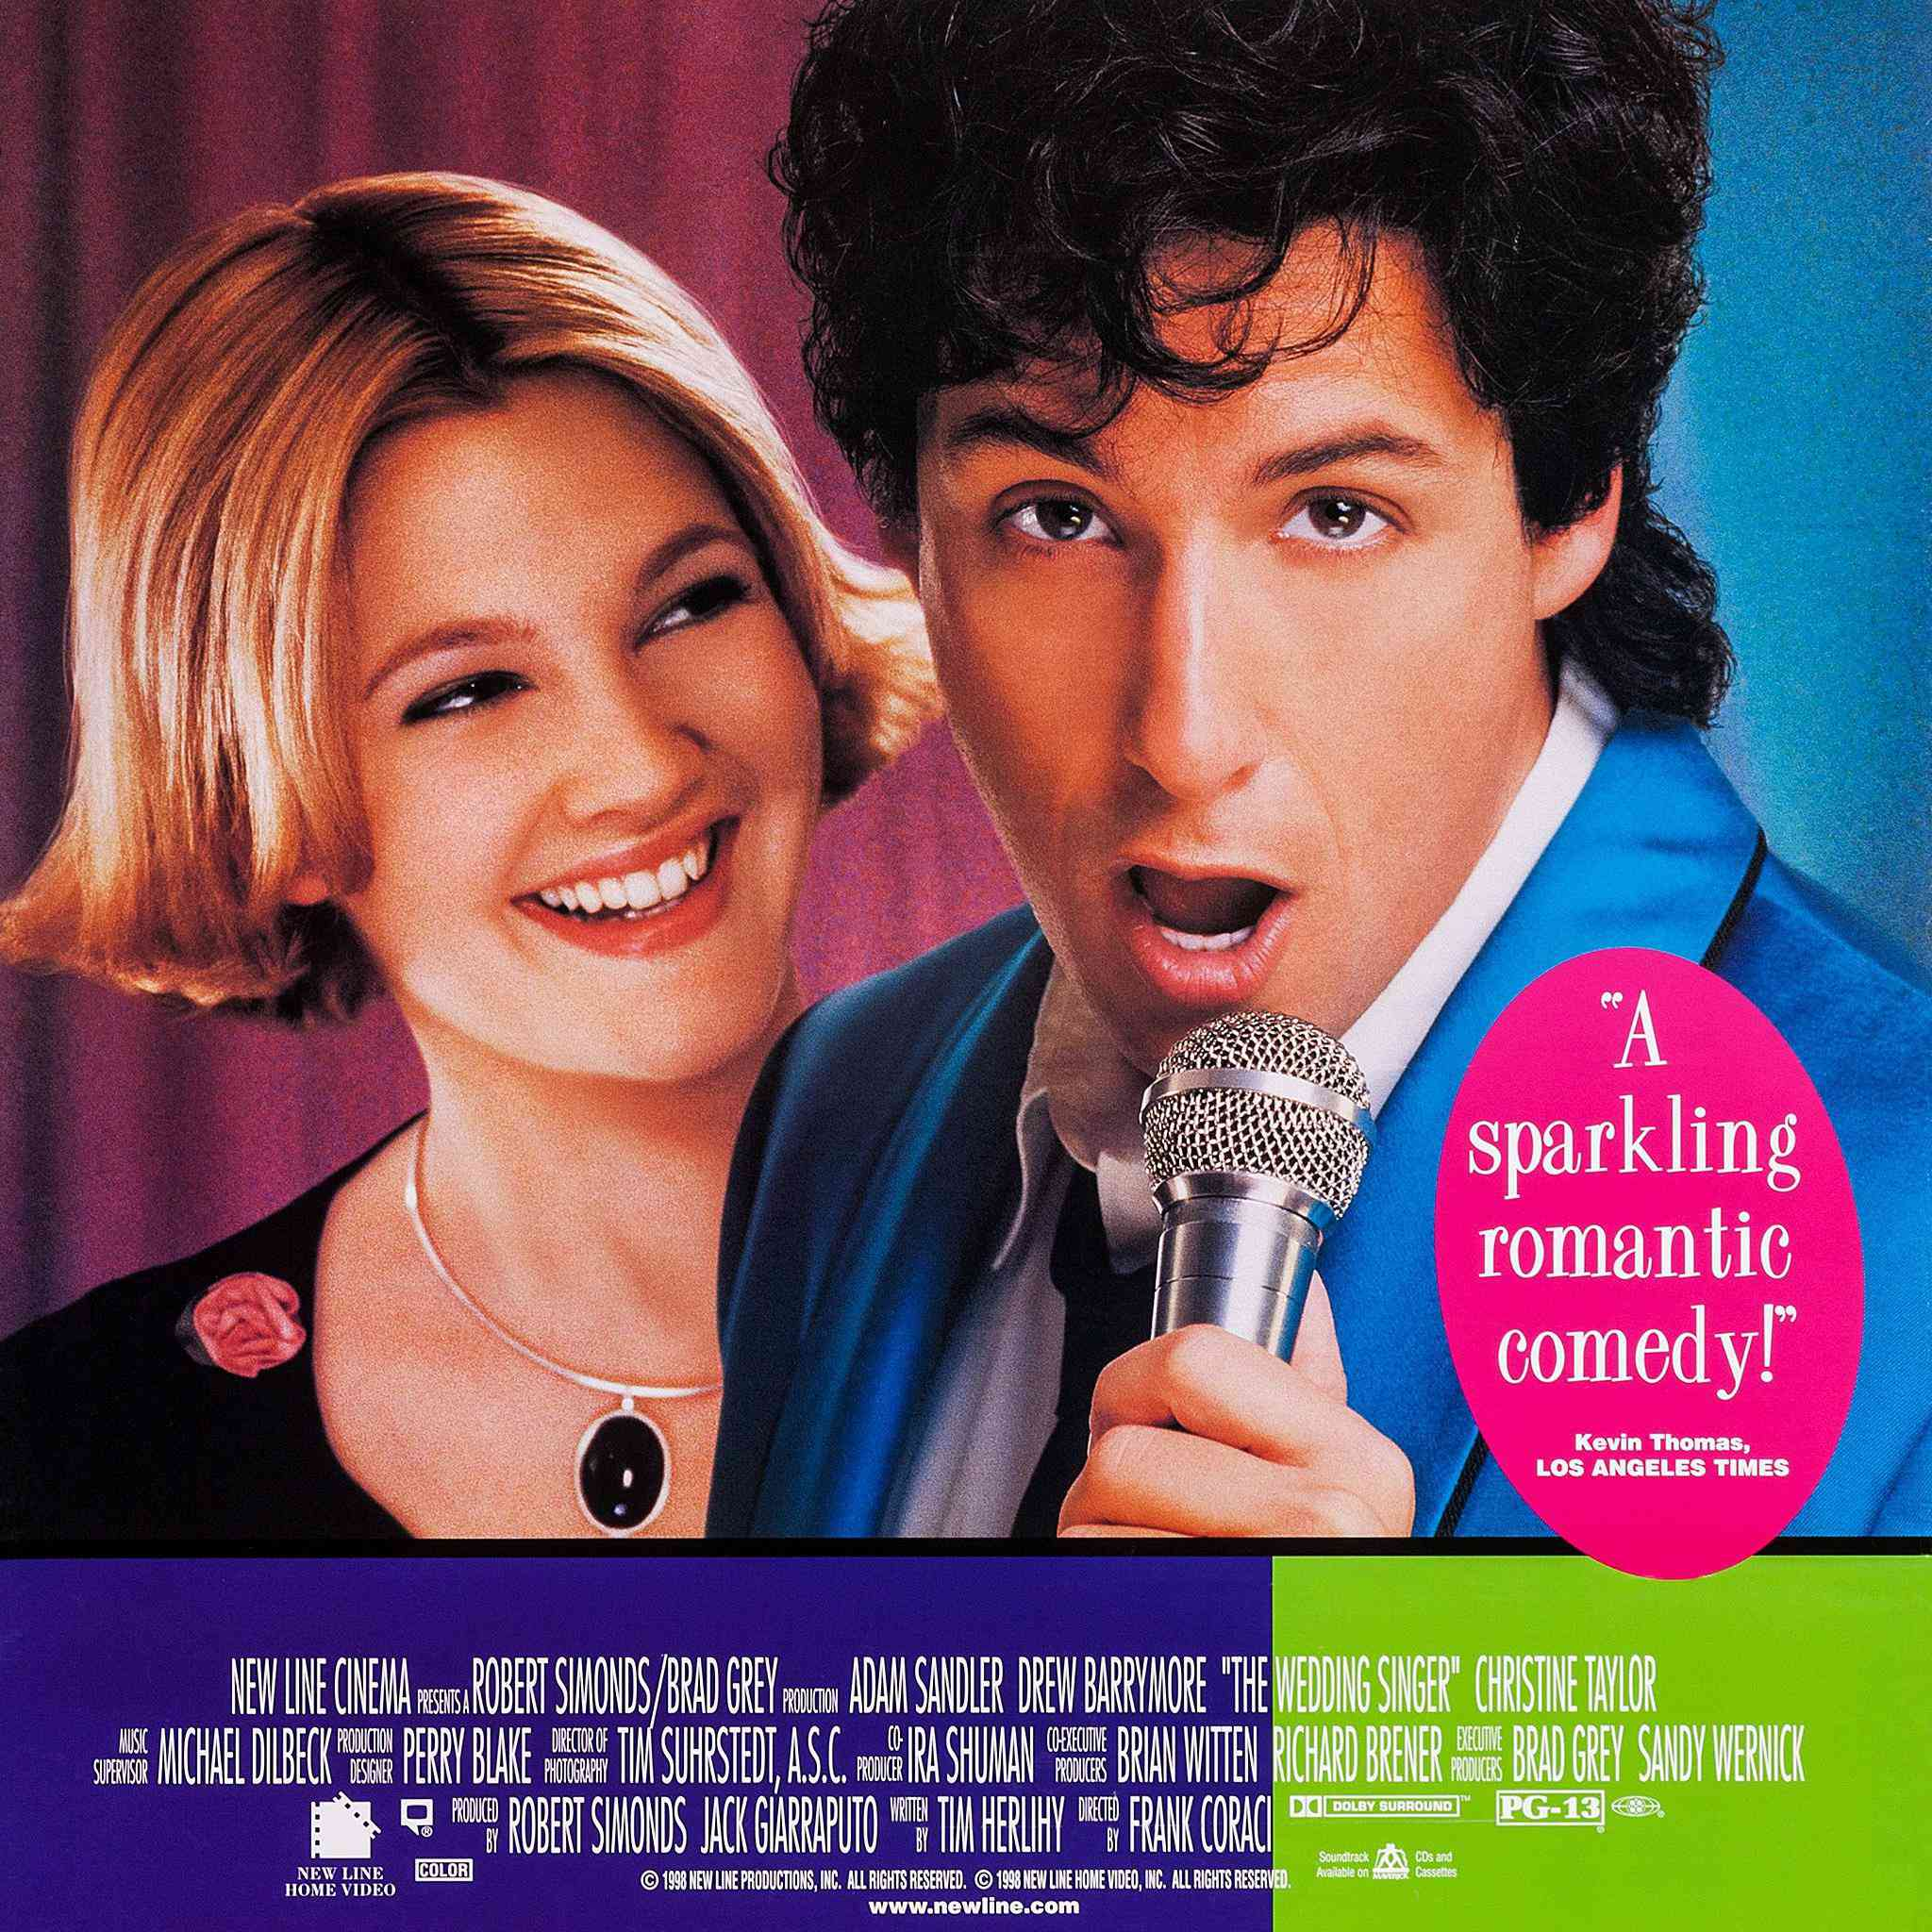 Wedding Singer Song.The Wedding Singer Turns 20 Here Are The Top Wedding Songs